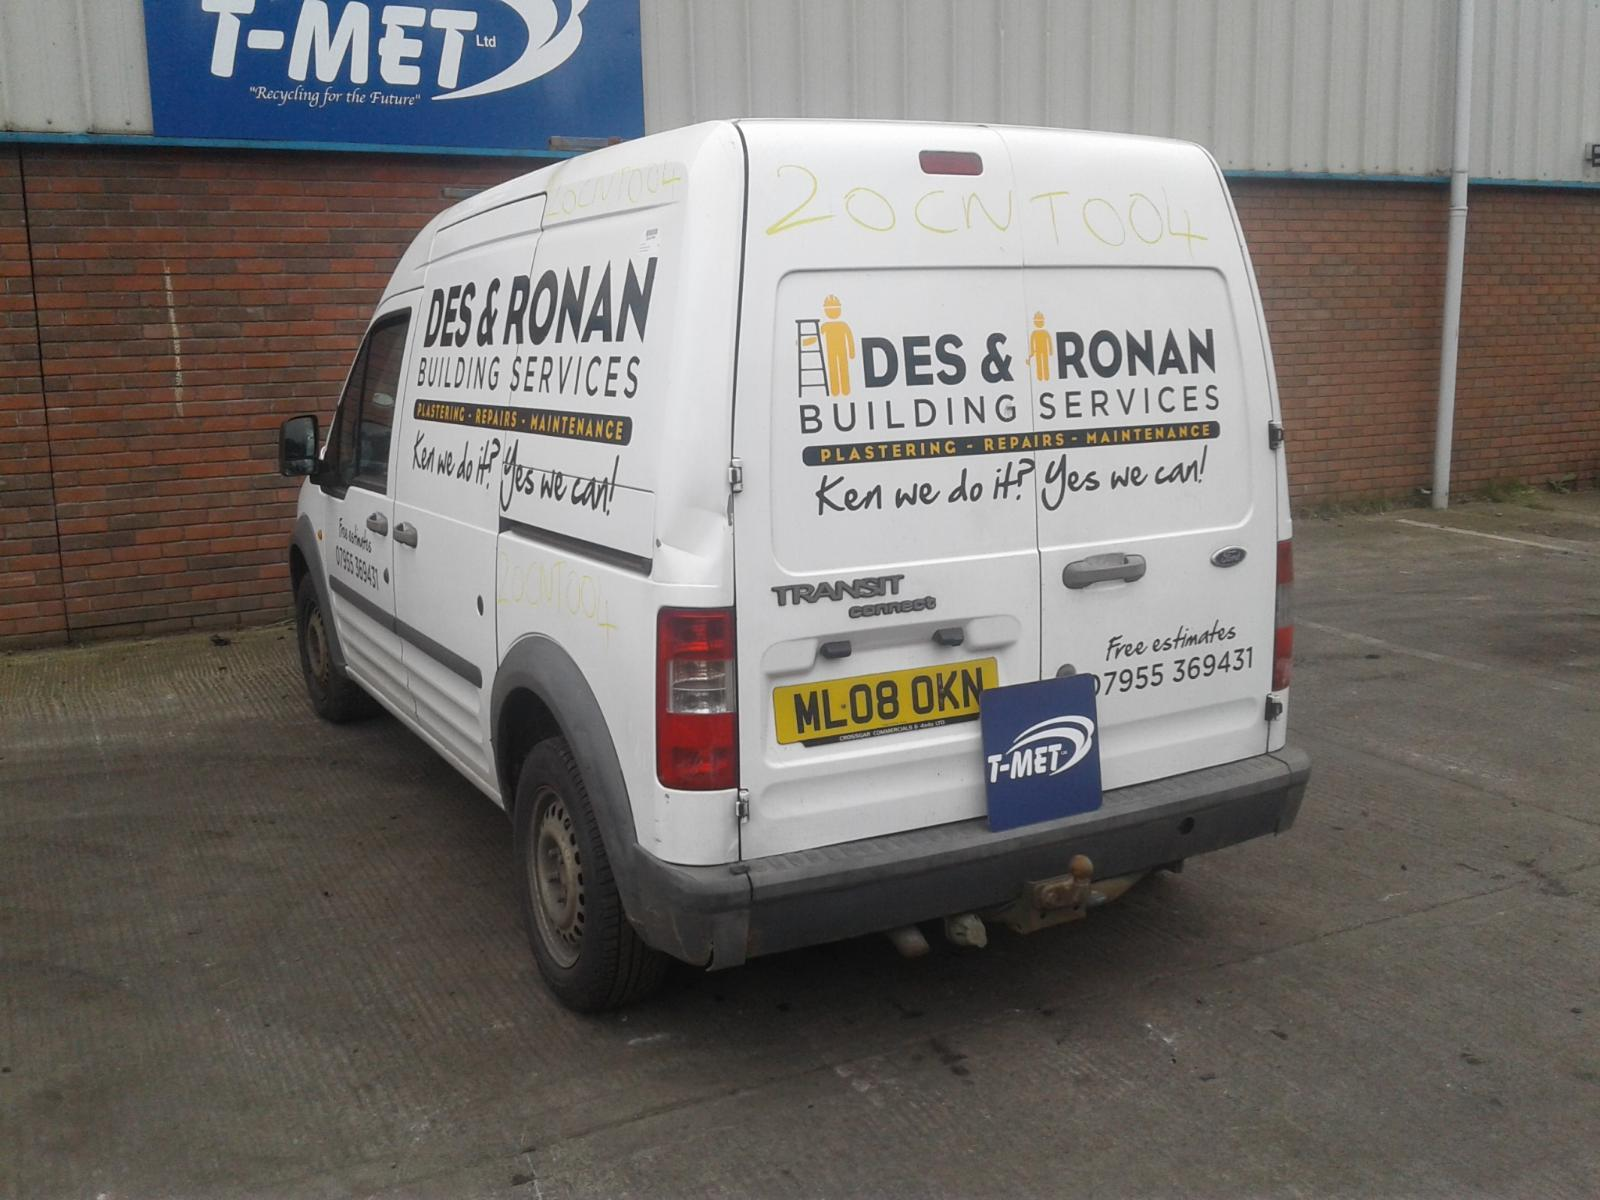 2008 FORD TRANSIT CONNECT Image